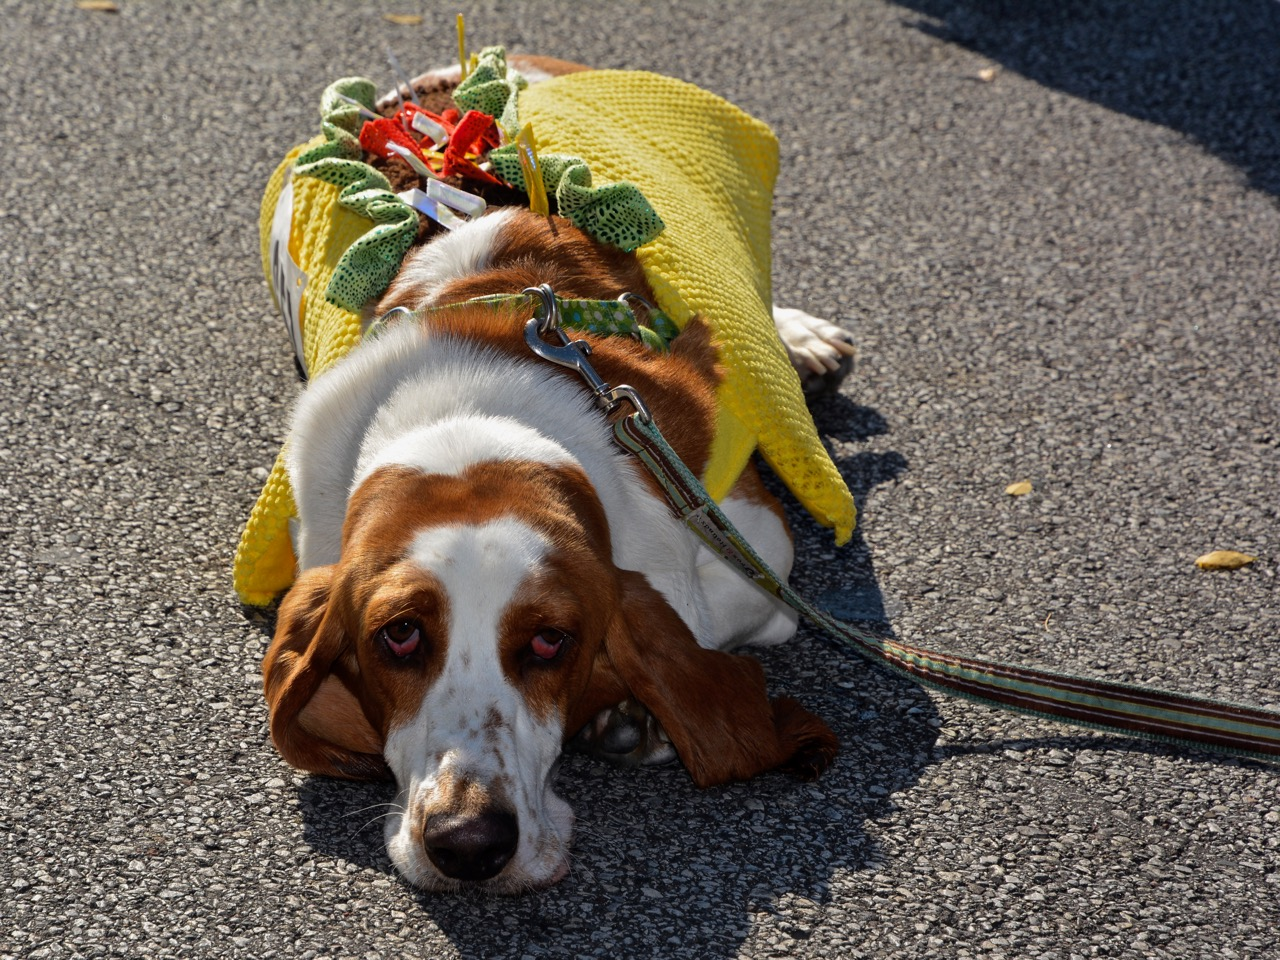 Dress up your pet day -  Huckleberry Bixenstine Wearing His Taco Suit At The Lakewood Spooky Pooch Parade Rick Uldricks Cleveland Editor